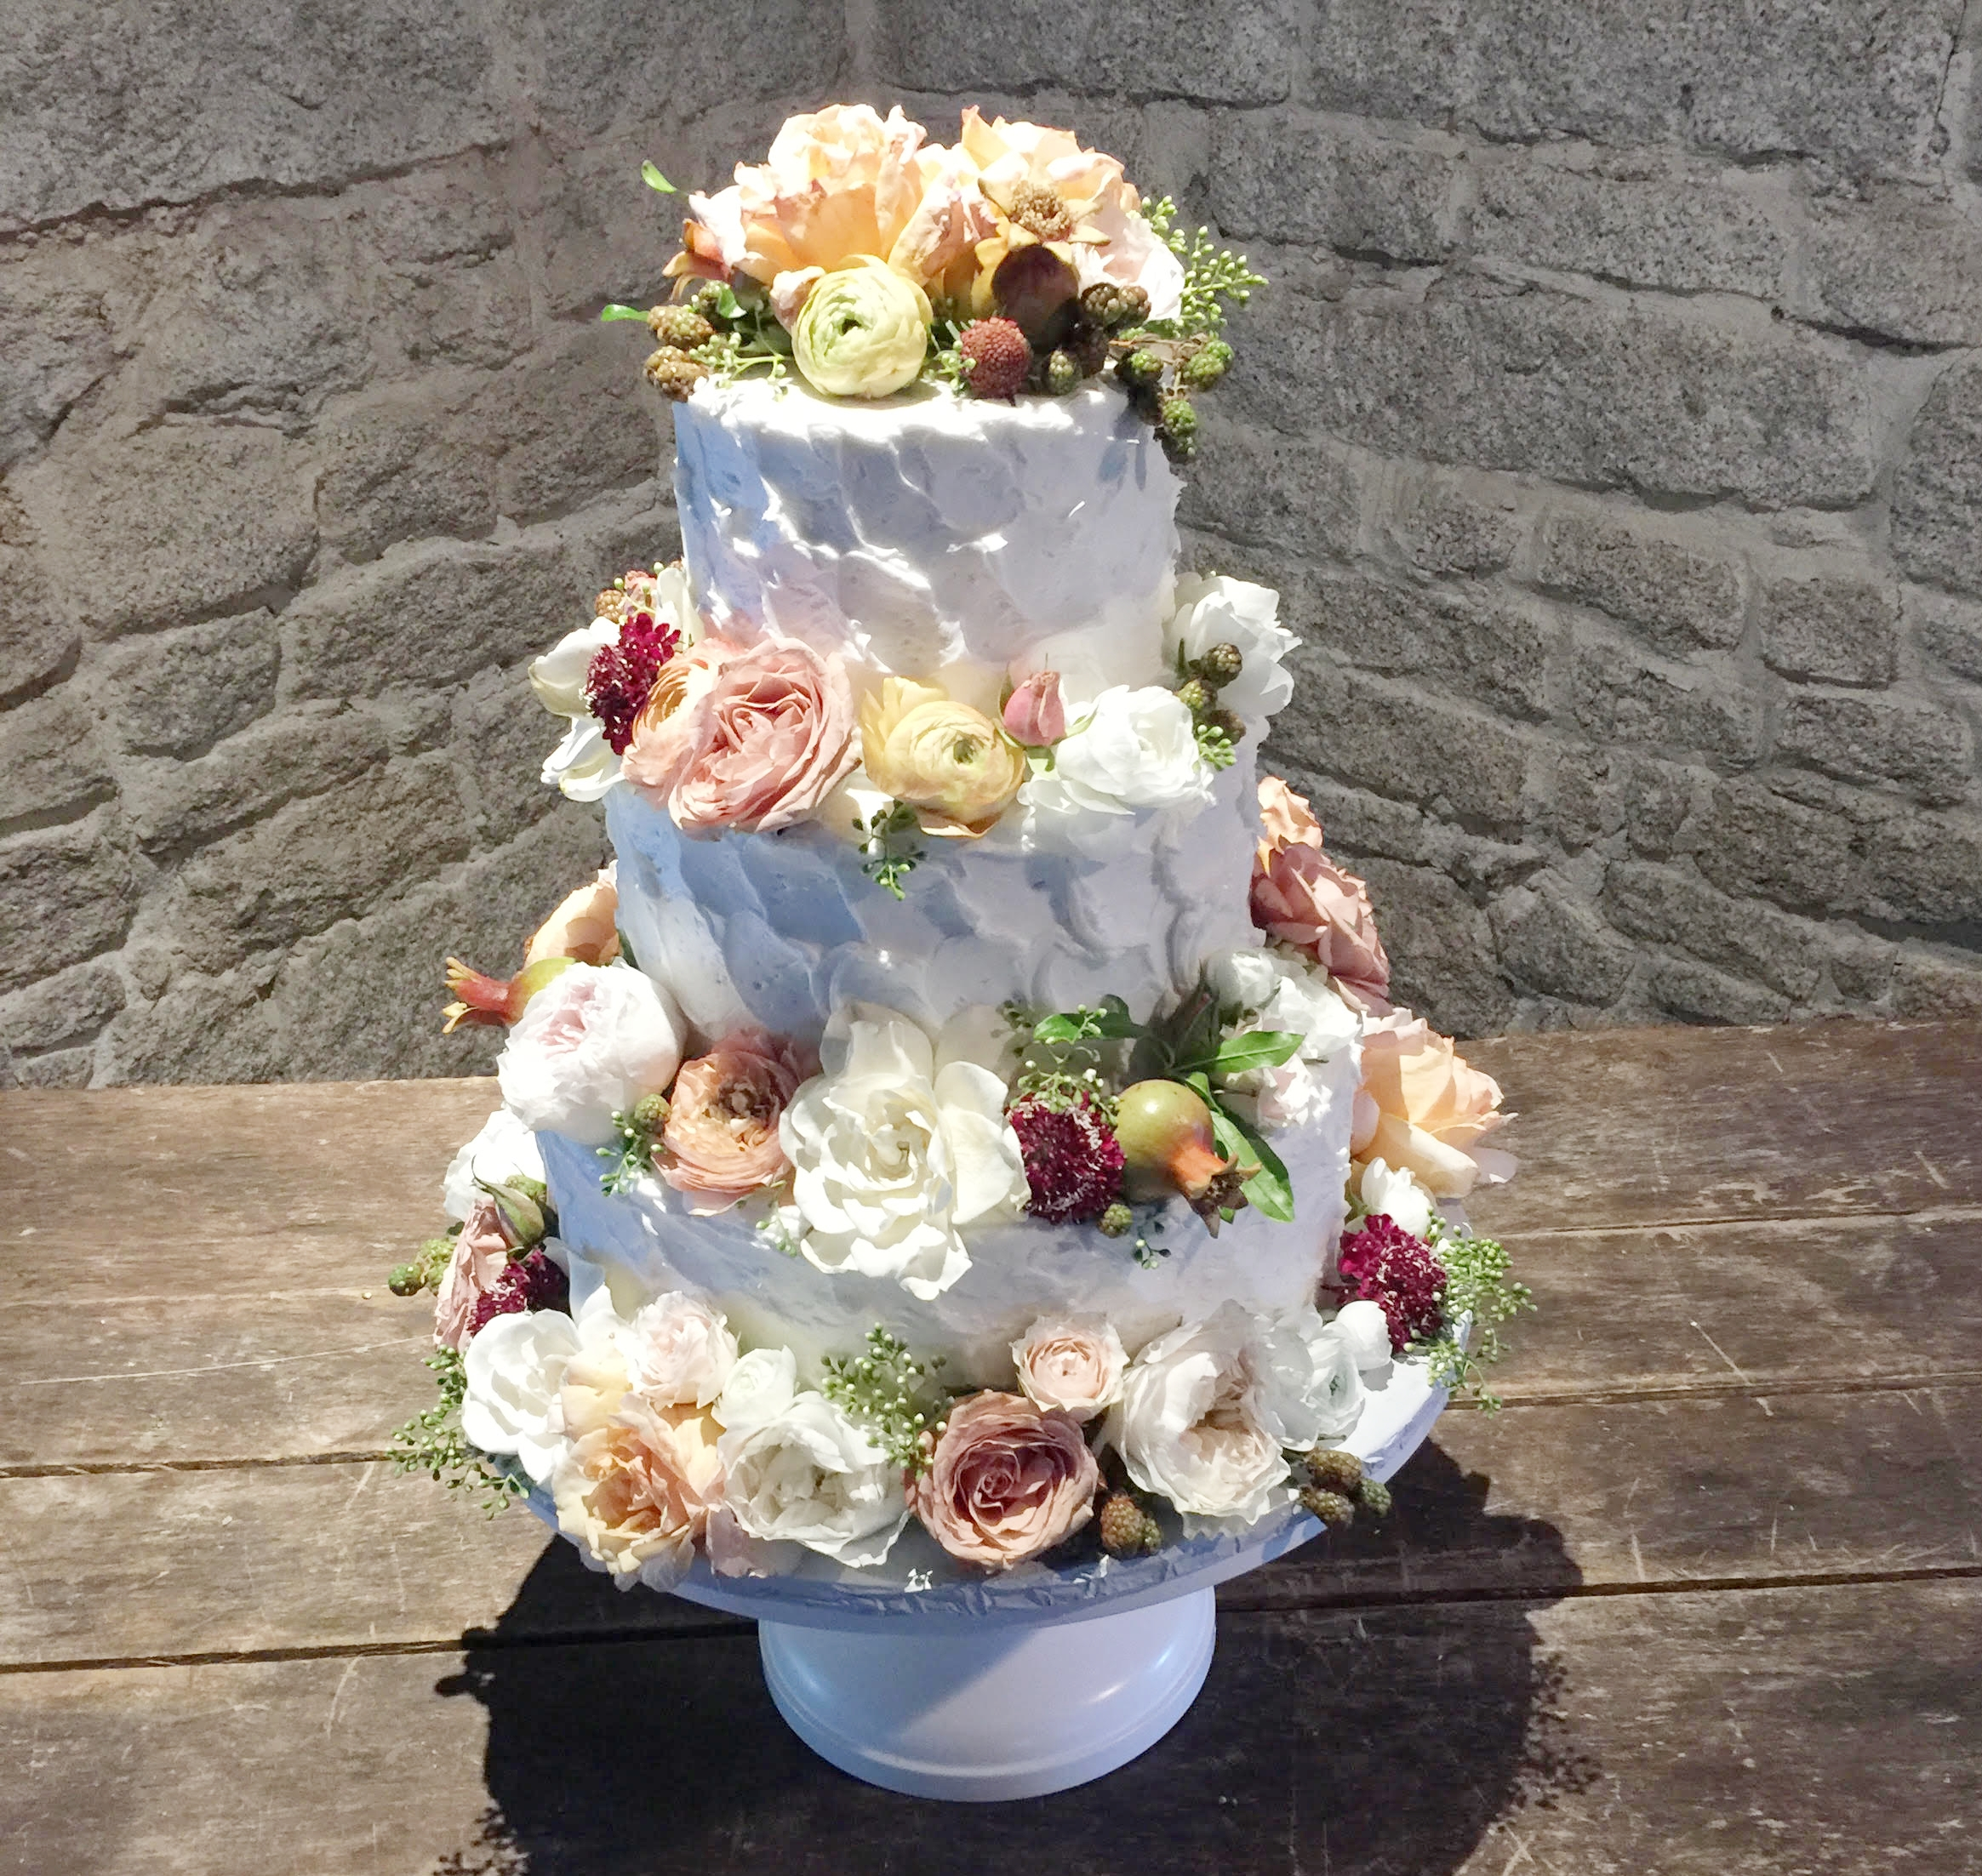 WHAT IS PRETTIER THAN FRESH FLOWERS ON A CAKE?!